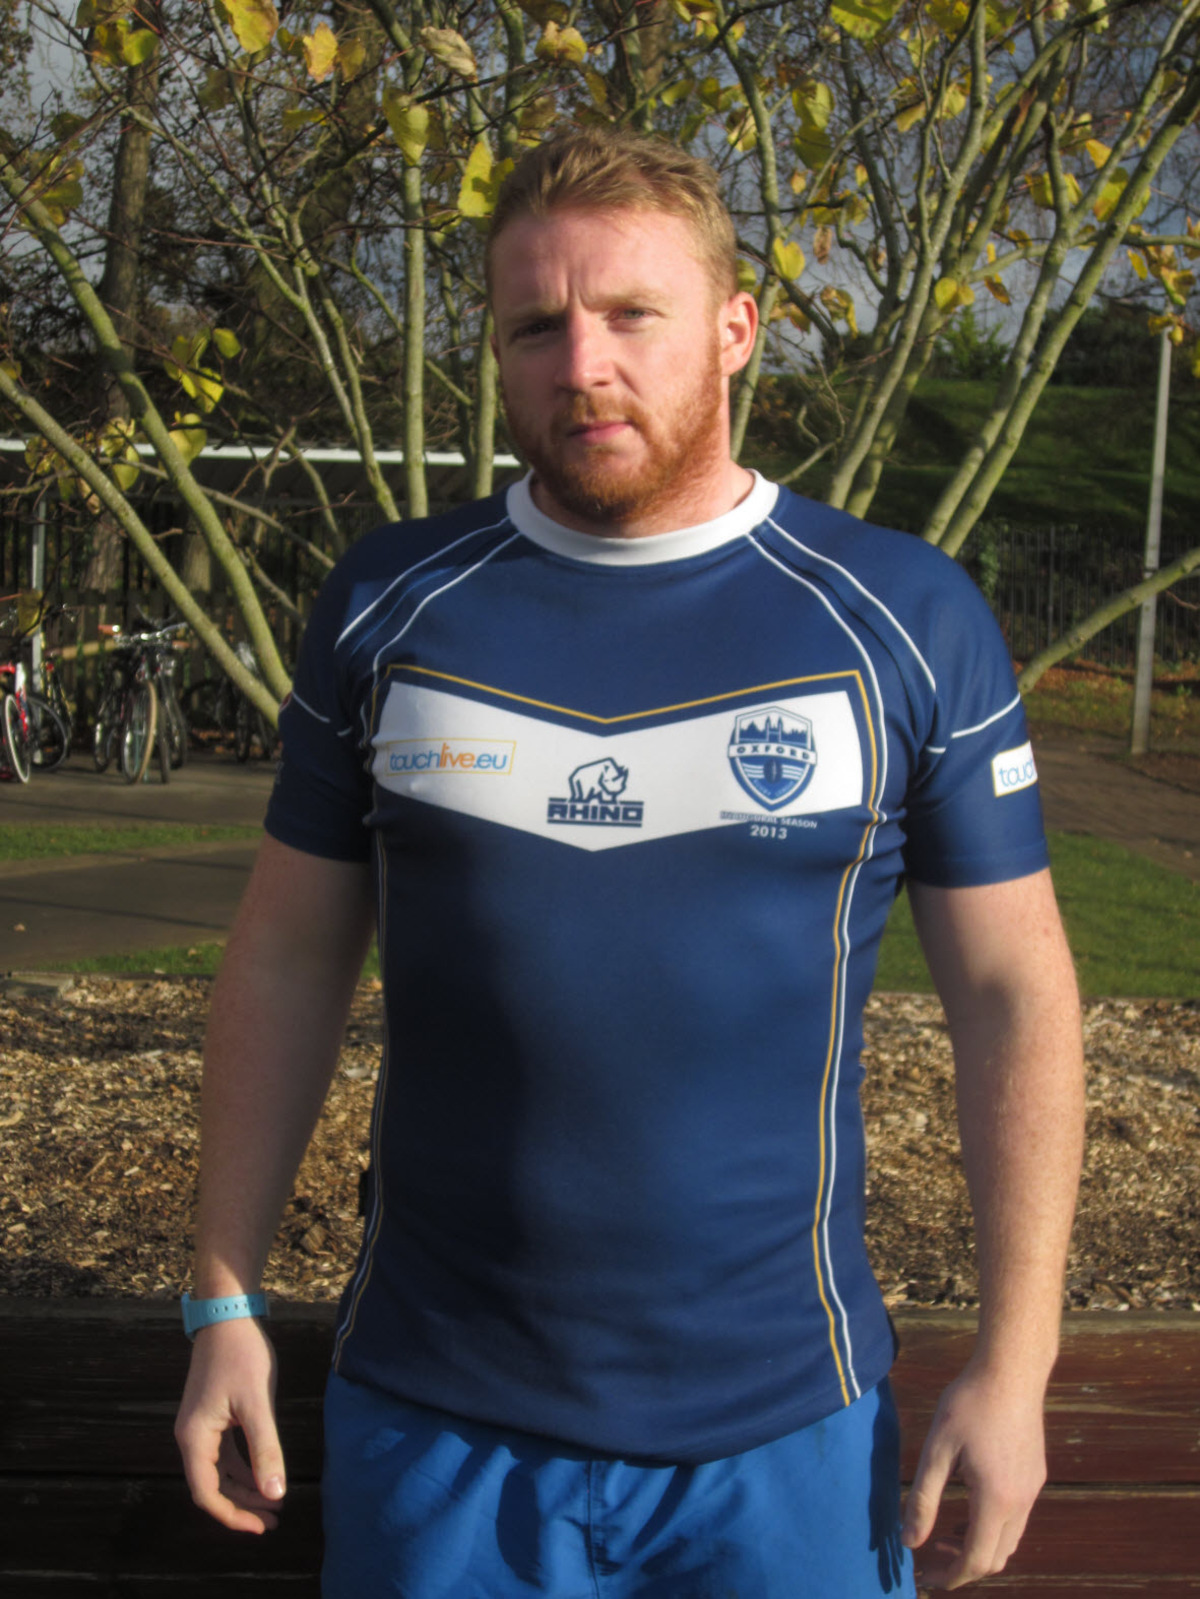 Former Cambridge University player Ed Hayles has joined Oxford Rugby League